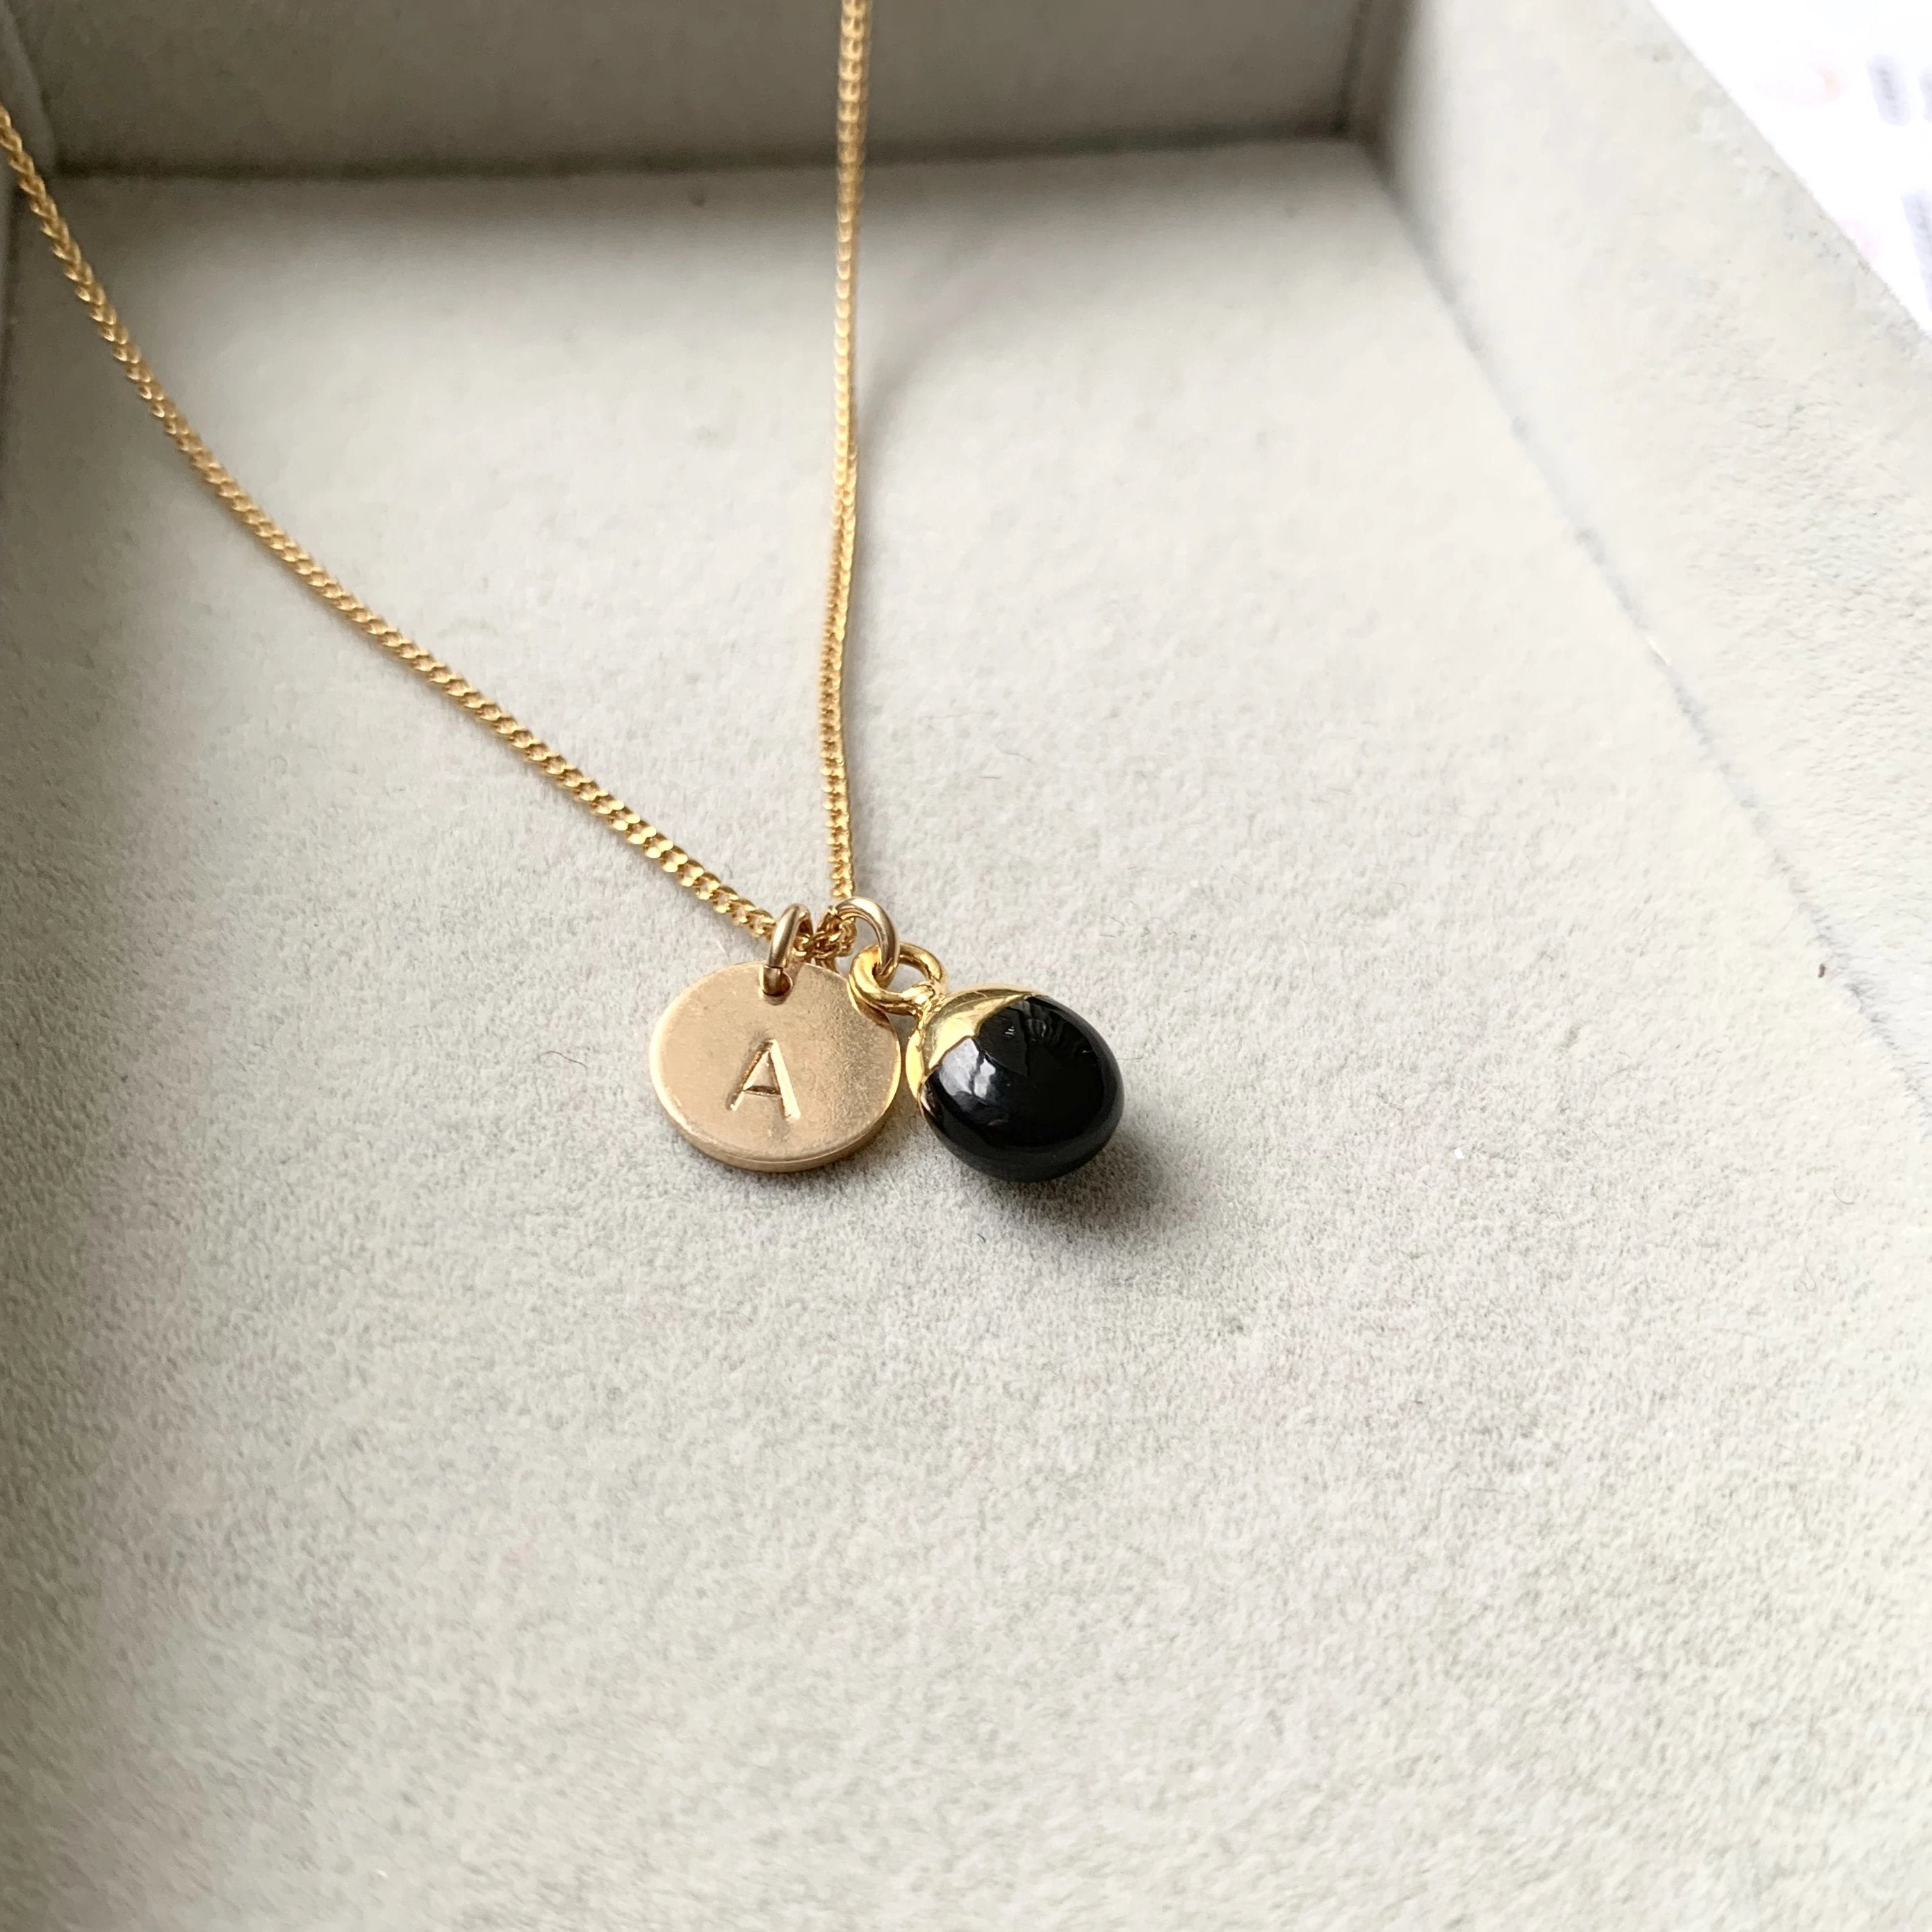 Tiny Tumbled Gemstone Necklace - Onyx (Strength) - Decadorn